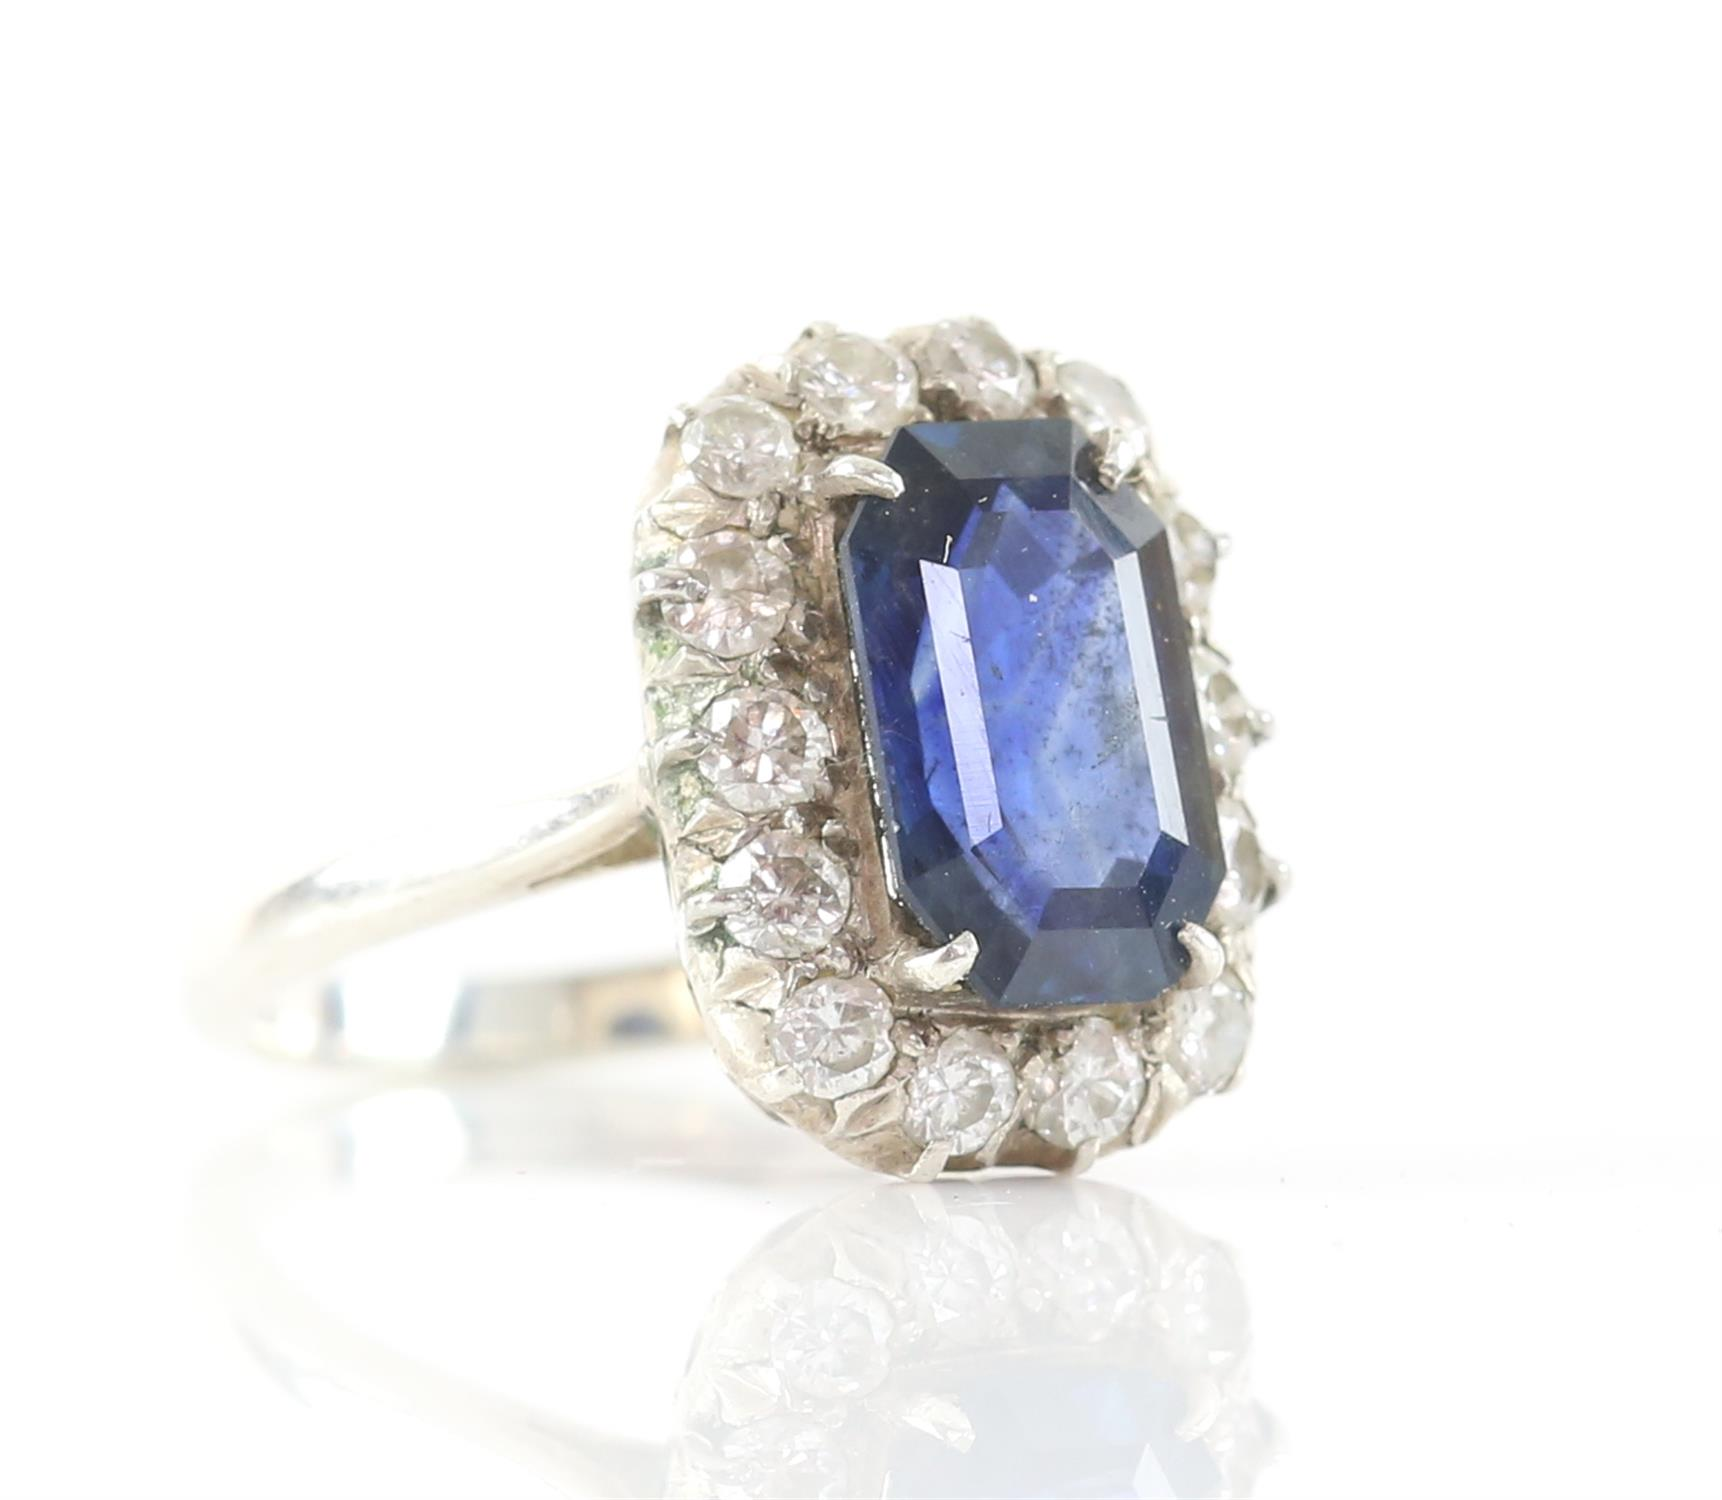 Sapphire and diamond cluster ring, with an emerald cut sapphire weighing an estimated 4.16 carats,